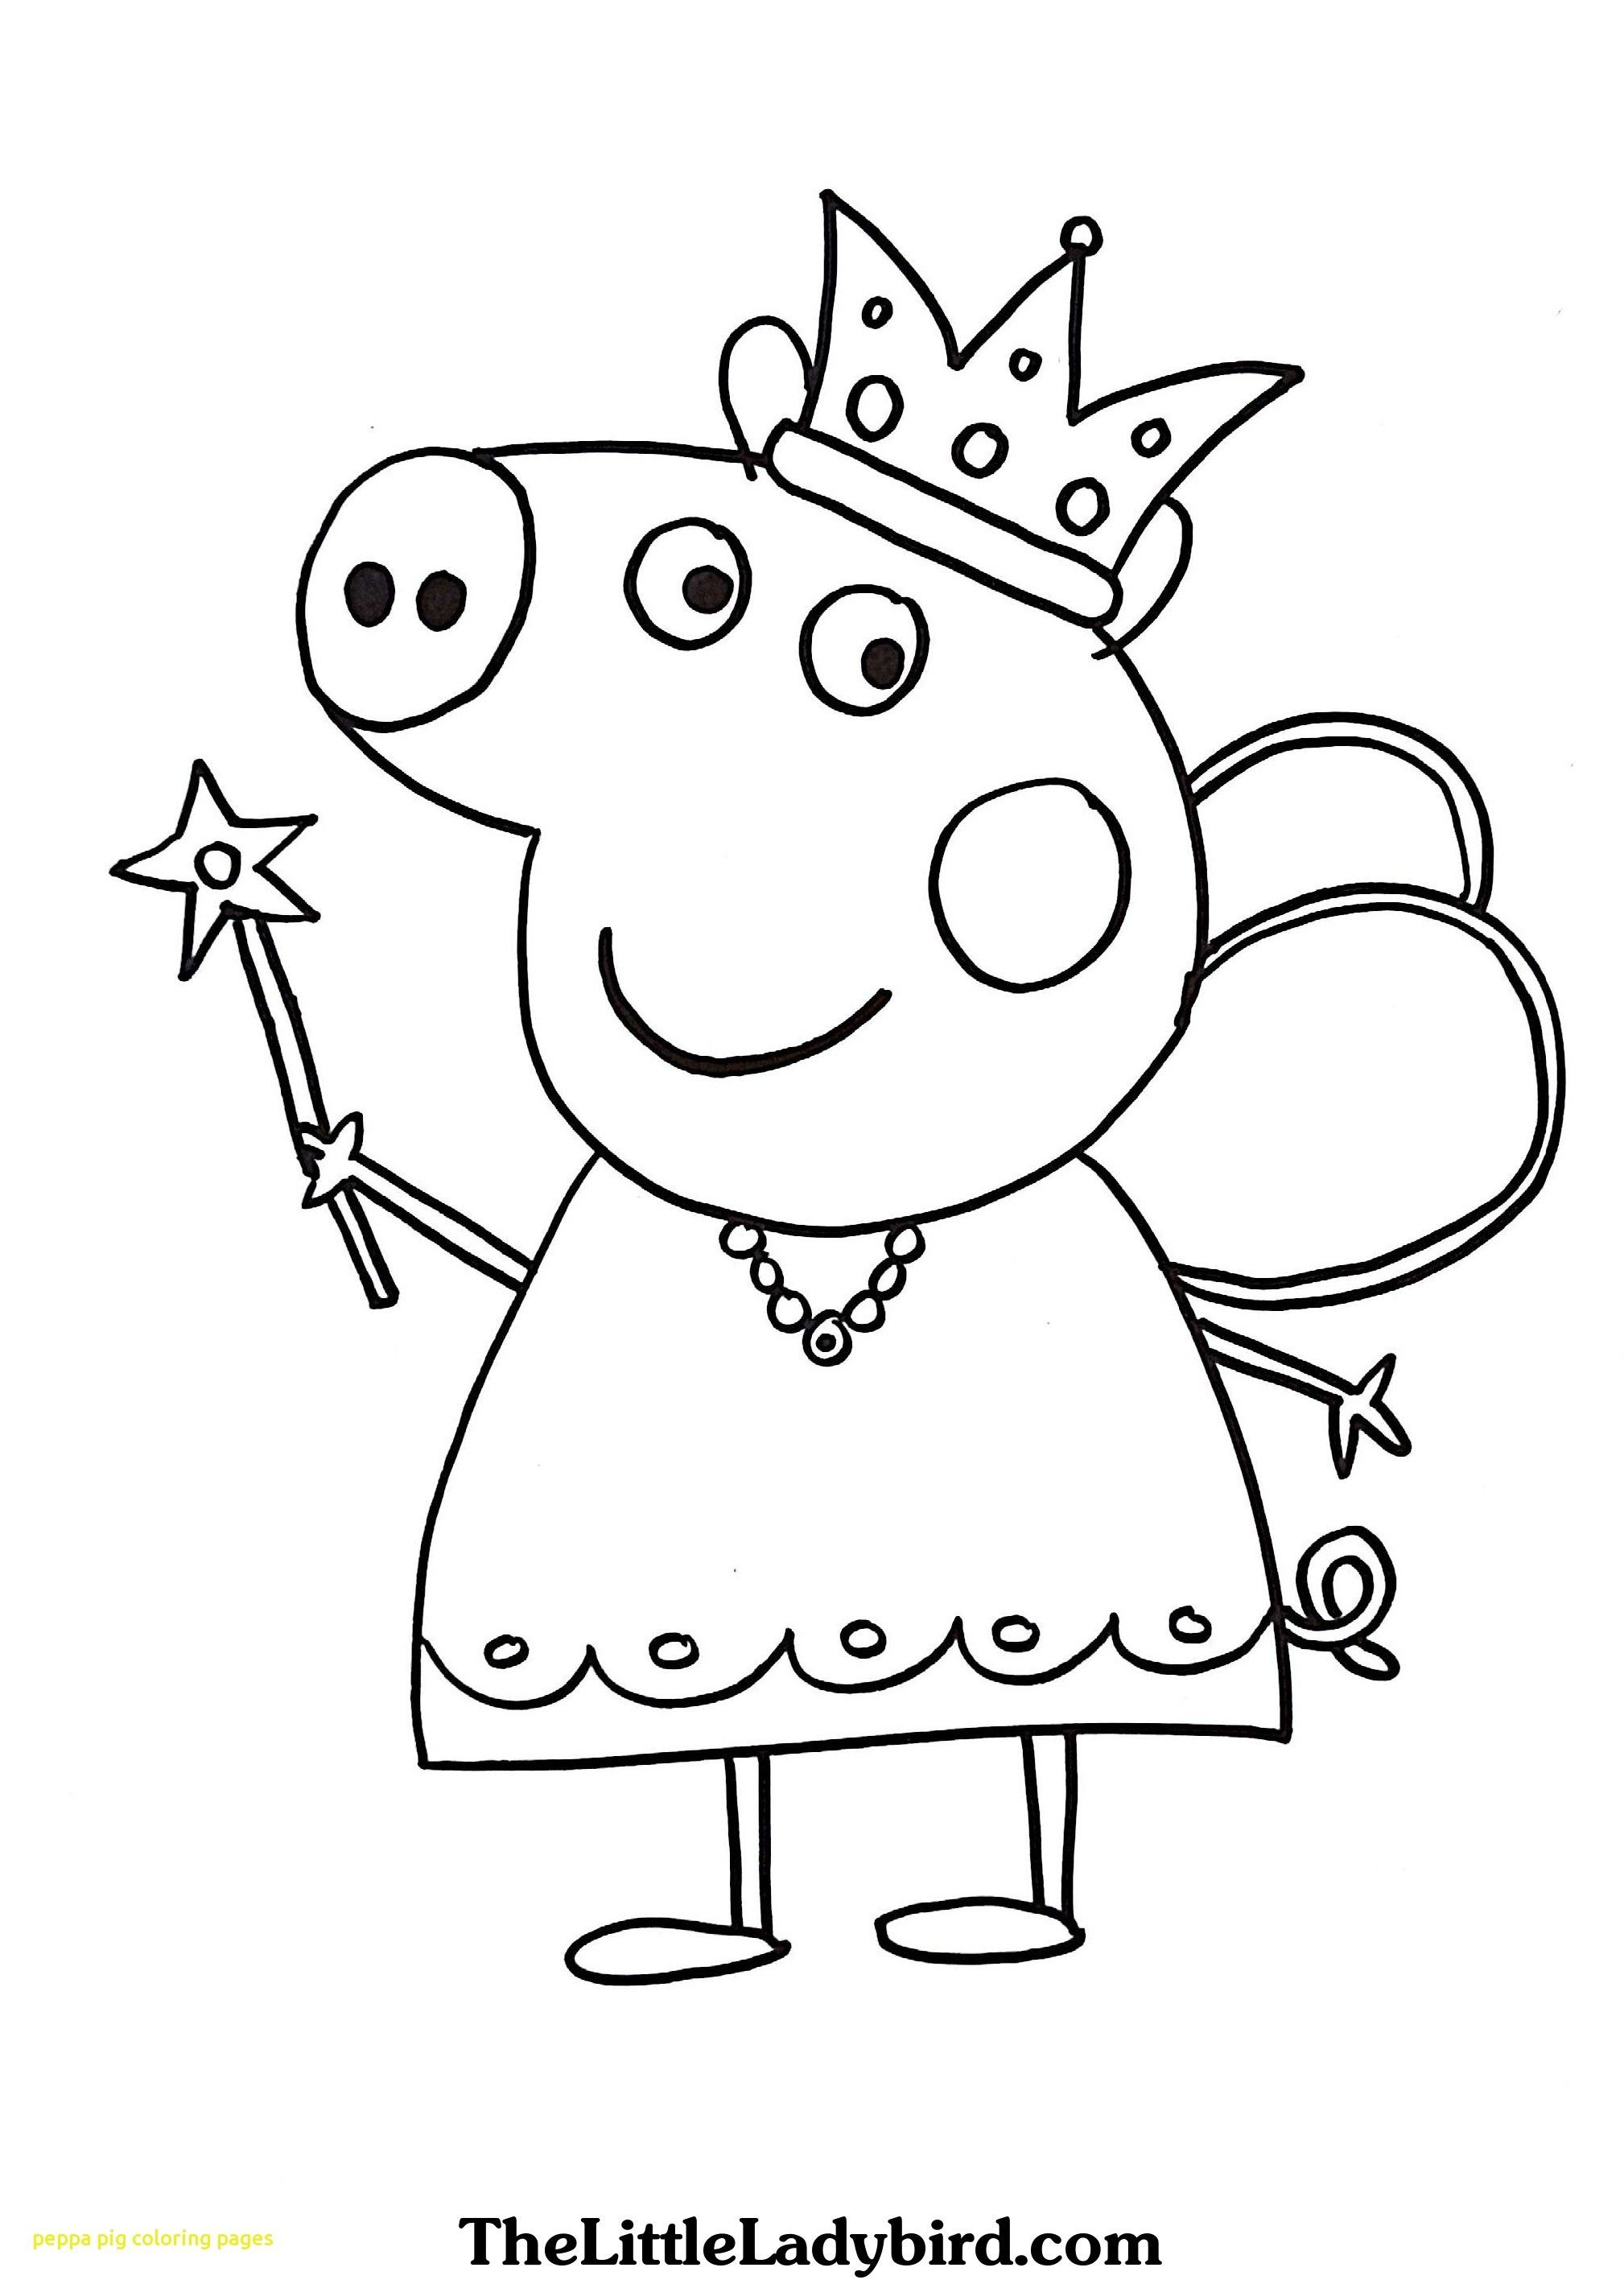 - Image Result For Peppa Pig Coloring Pages Peppa Pig Coloring